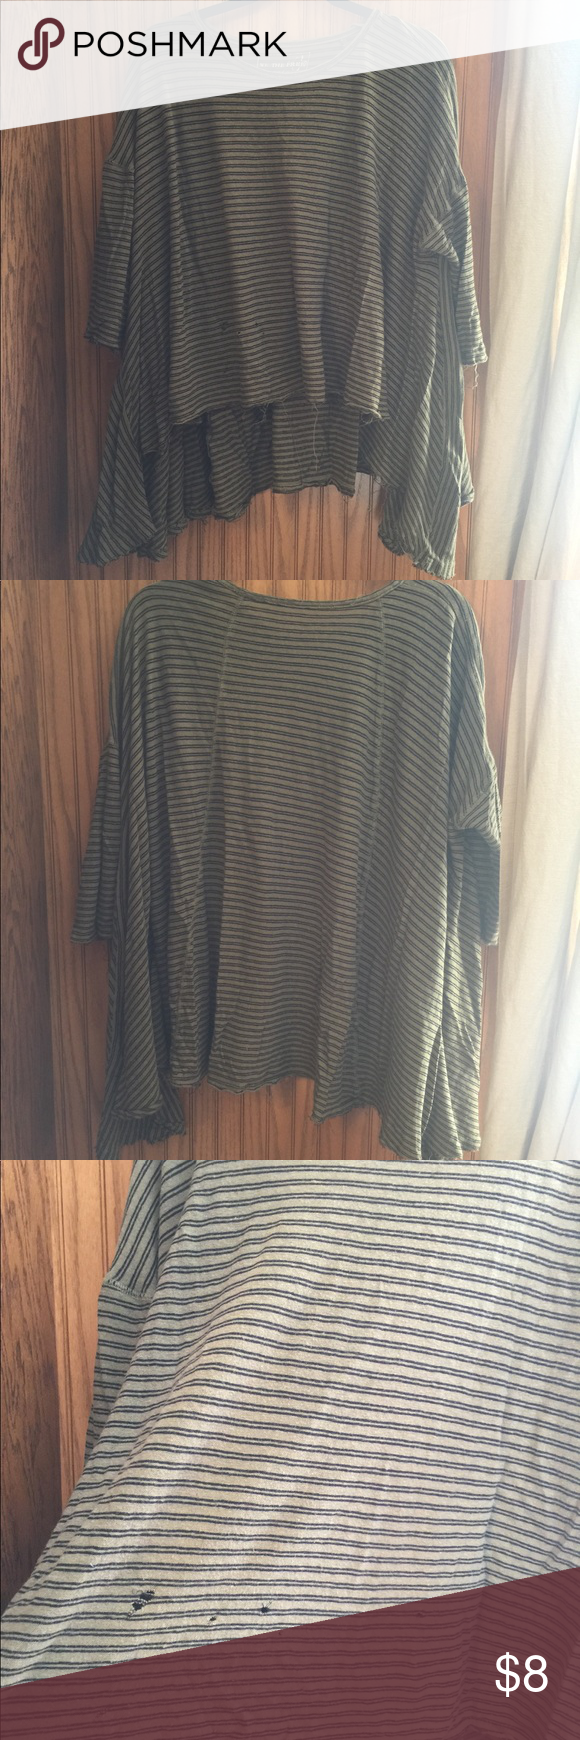 Free people high low distressed 3/4 sleeve top GUC due to distressing / piling has holes and not sure if the holes are meant to be there see photos pls Free People Tops